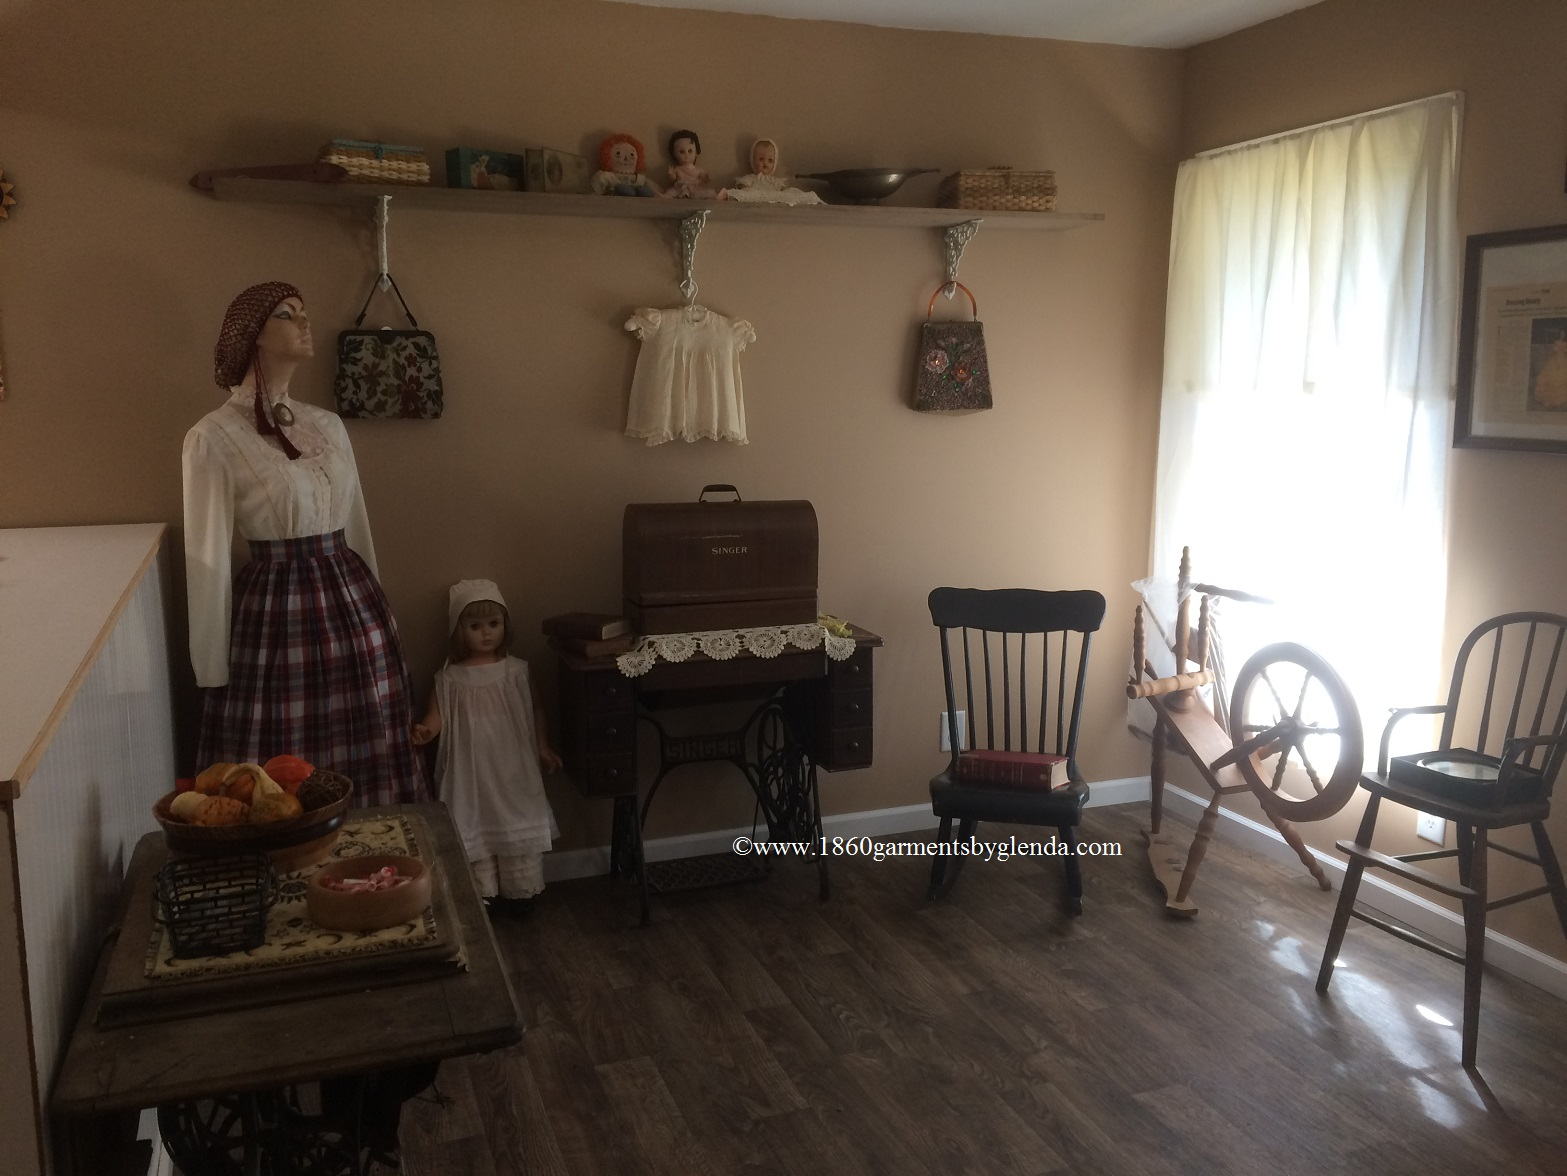 1860 Garments By Glenda, Signal Mountain, Tennessee, my shop.